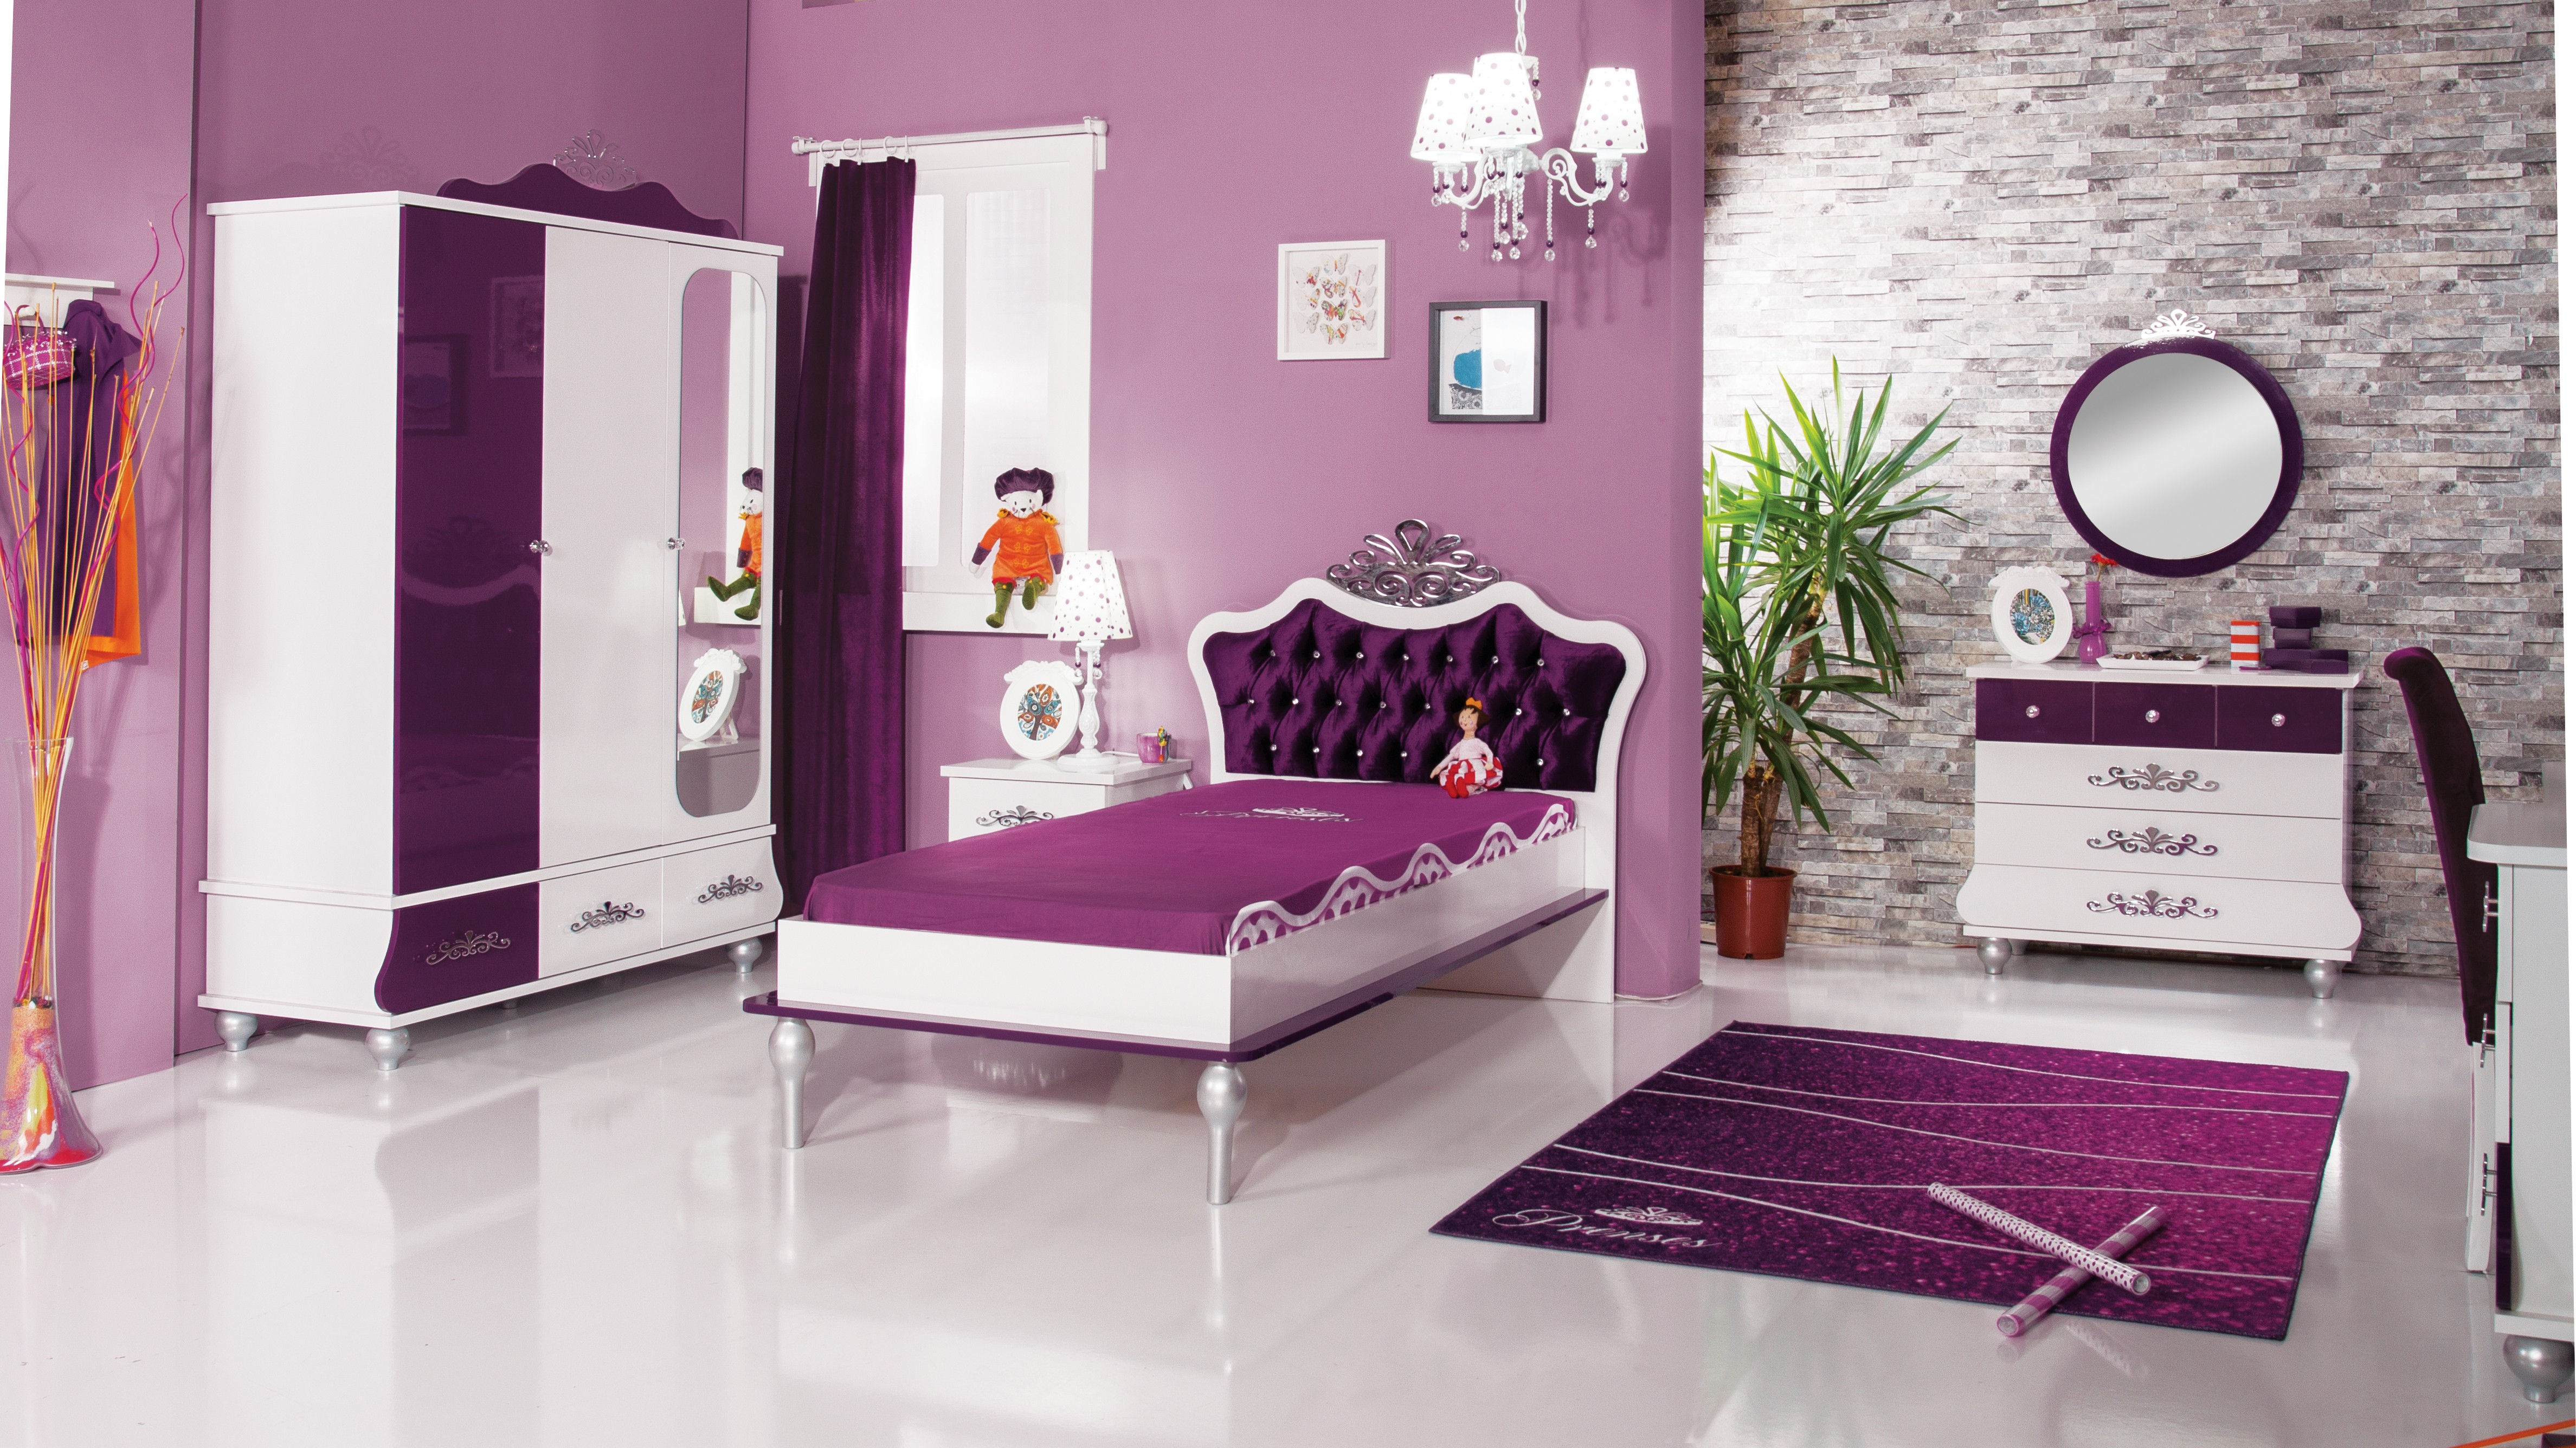 chambre blanc et violette princesse dola. Black Bedroom Furniture Sets. Home Design Ideas